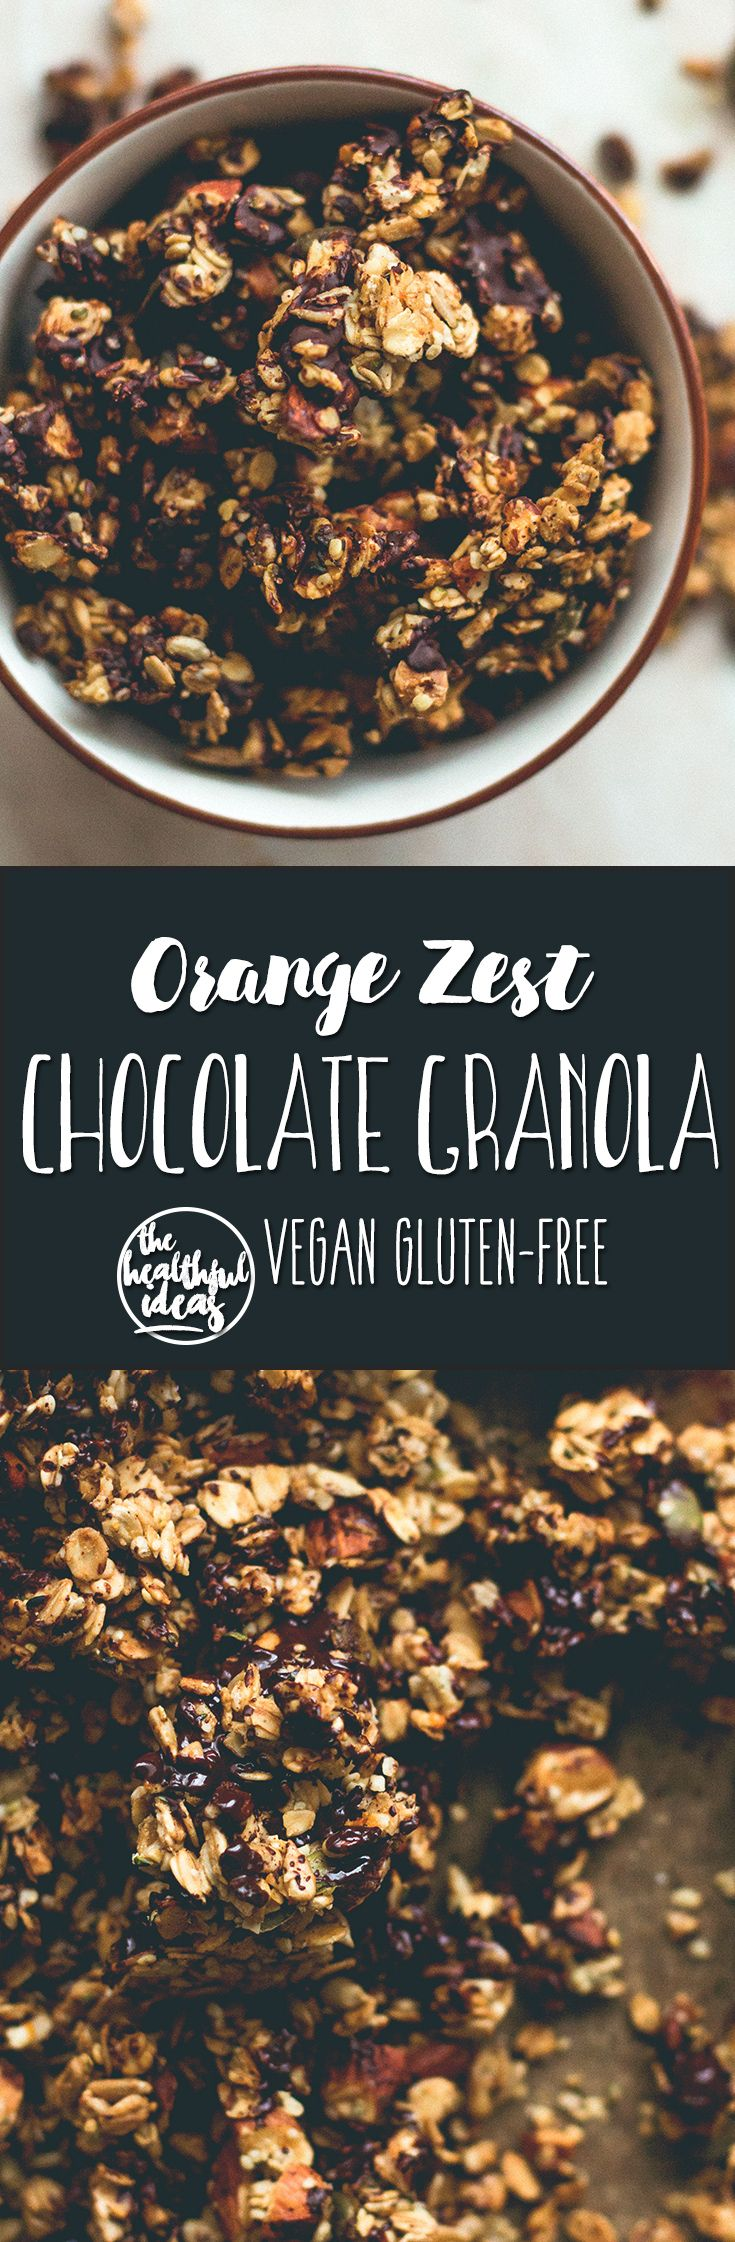 Orange Zest Granola with Dark Chocolate - delicious sweet zesty granola with melted cacao paste on top to create the best dark chocolate & orange flavor. Gluten-free, vegan, and sugar-free! You'll LOVE this granola!   thehealthfulideas.com